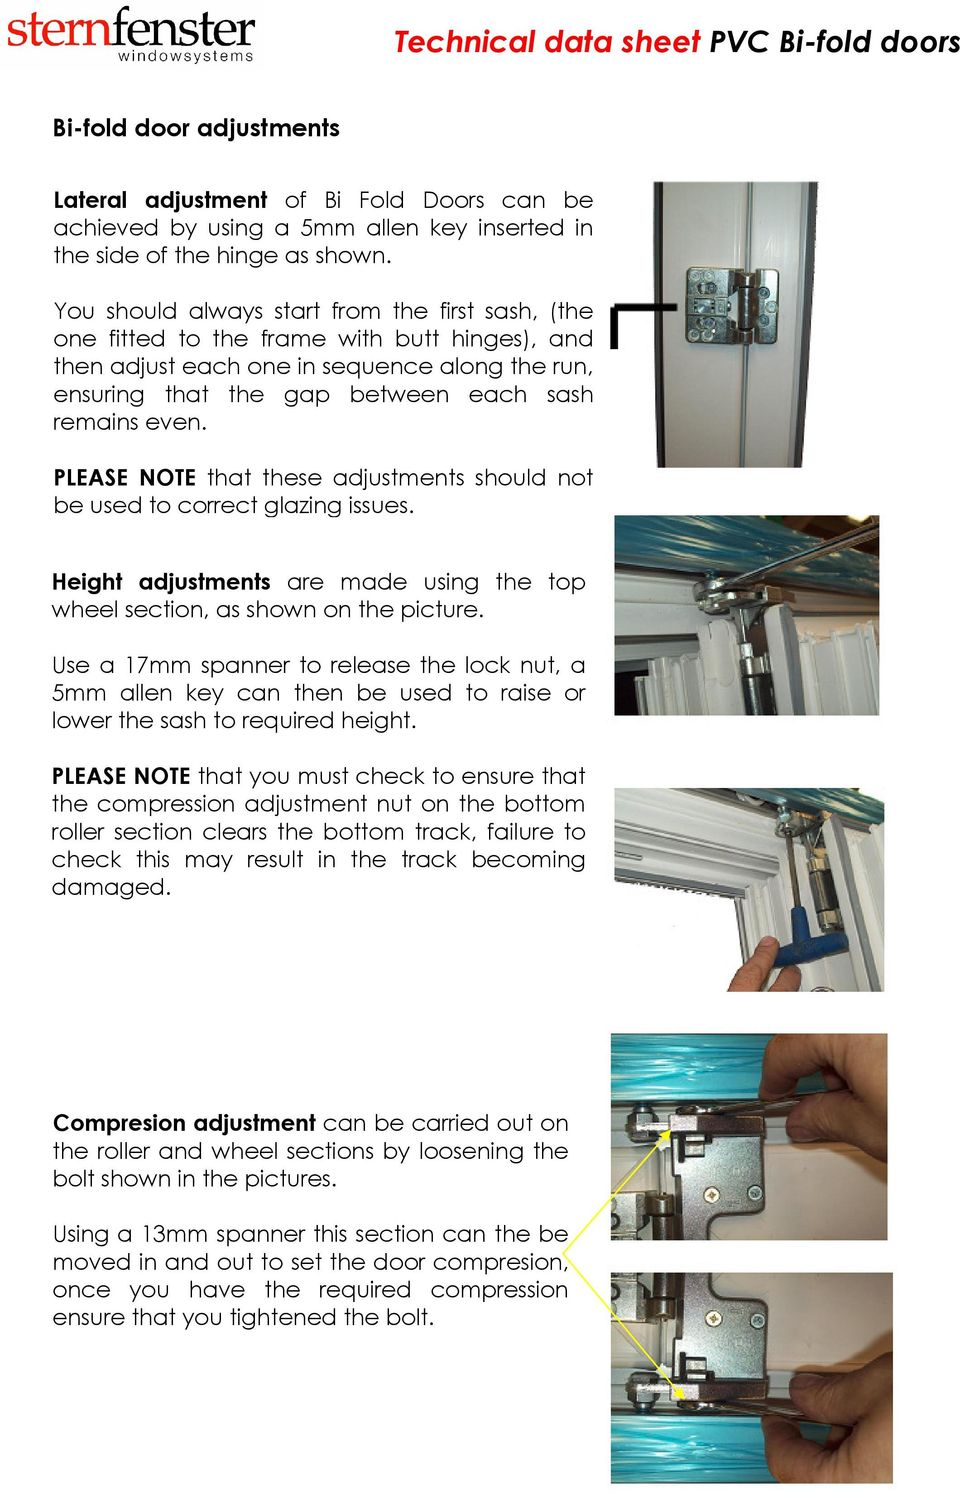 PLEASE NOTE that these adjustments should not be used to correct glazing issues. Height adjustments are made using the top wheel section, as shown on the picture.